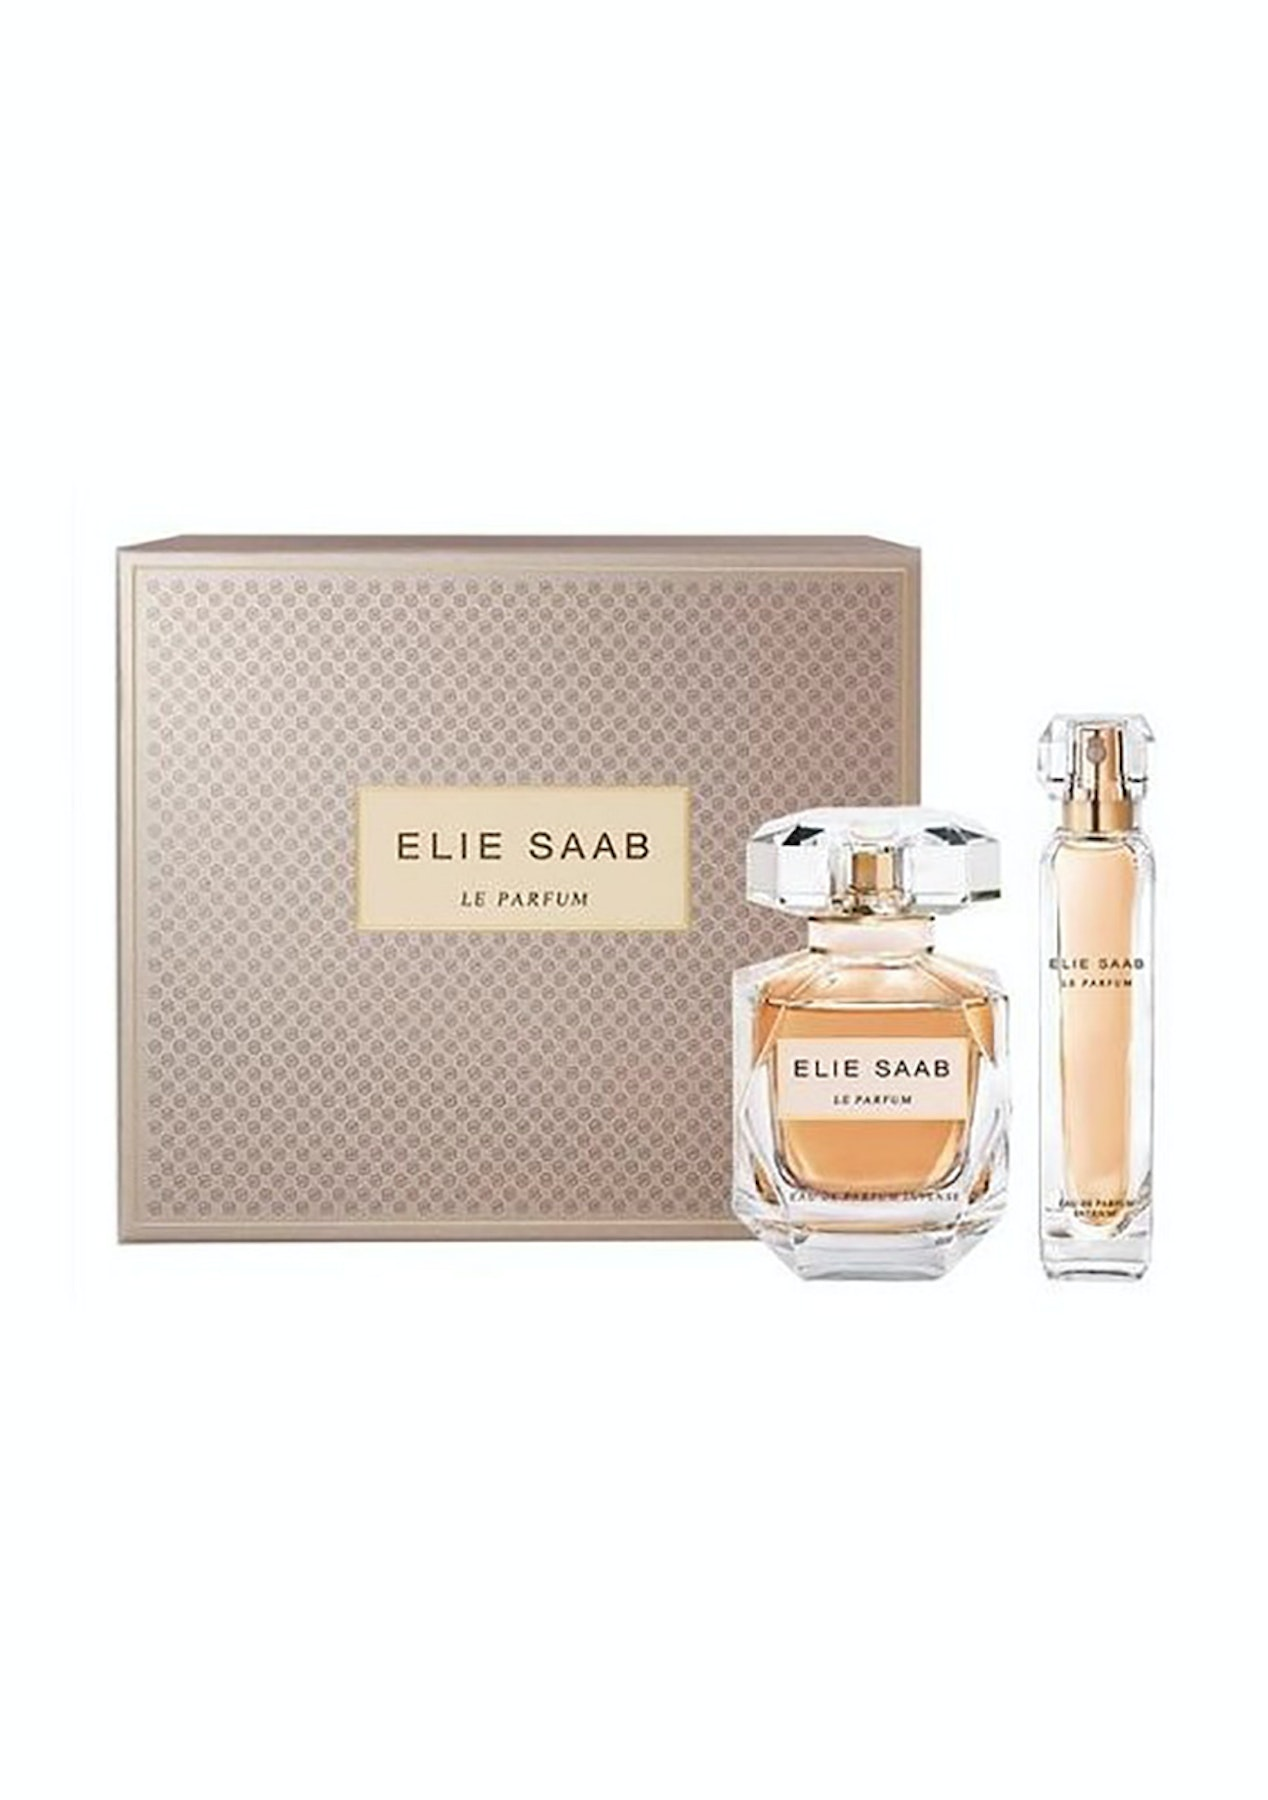 Elie Saab Le Parfum Intense 2 Piece Set Luxe Gifts For Her Onceit